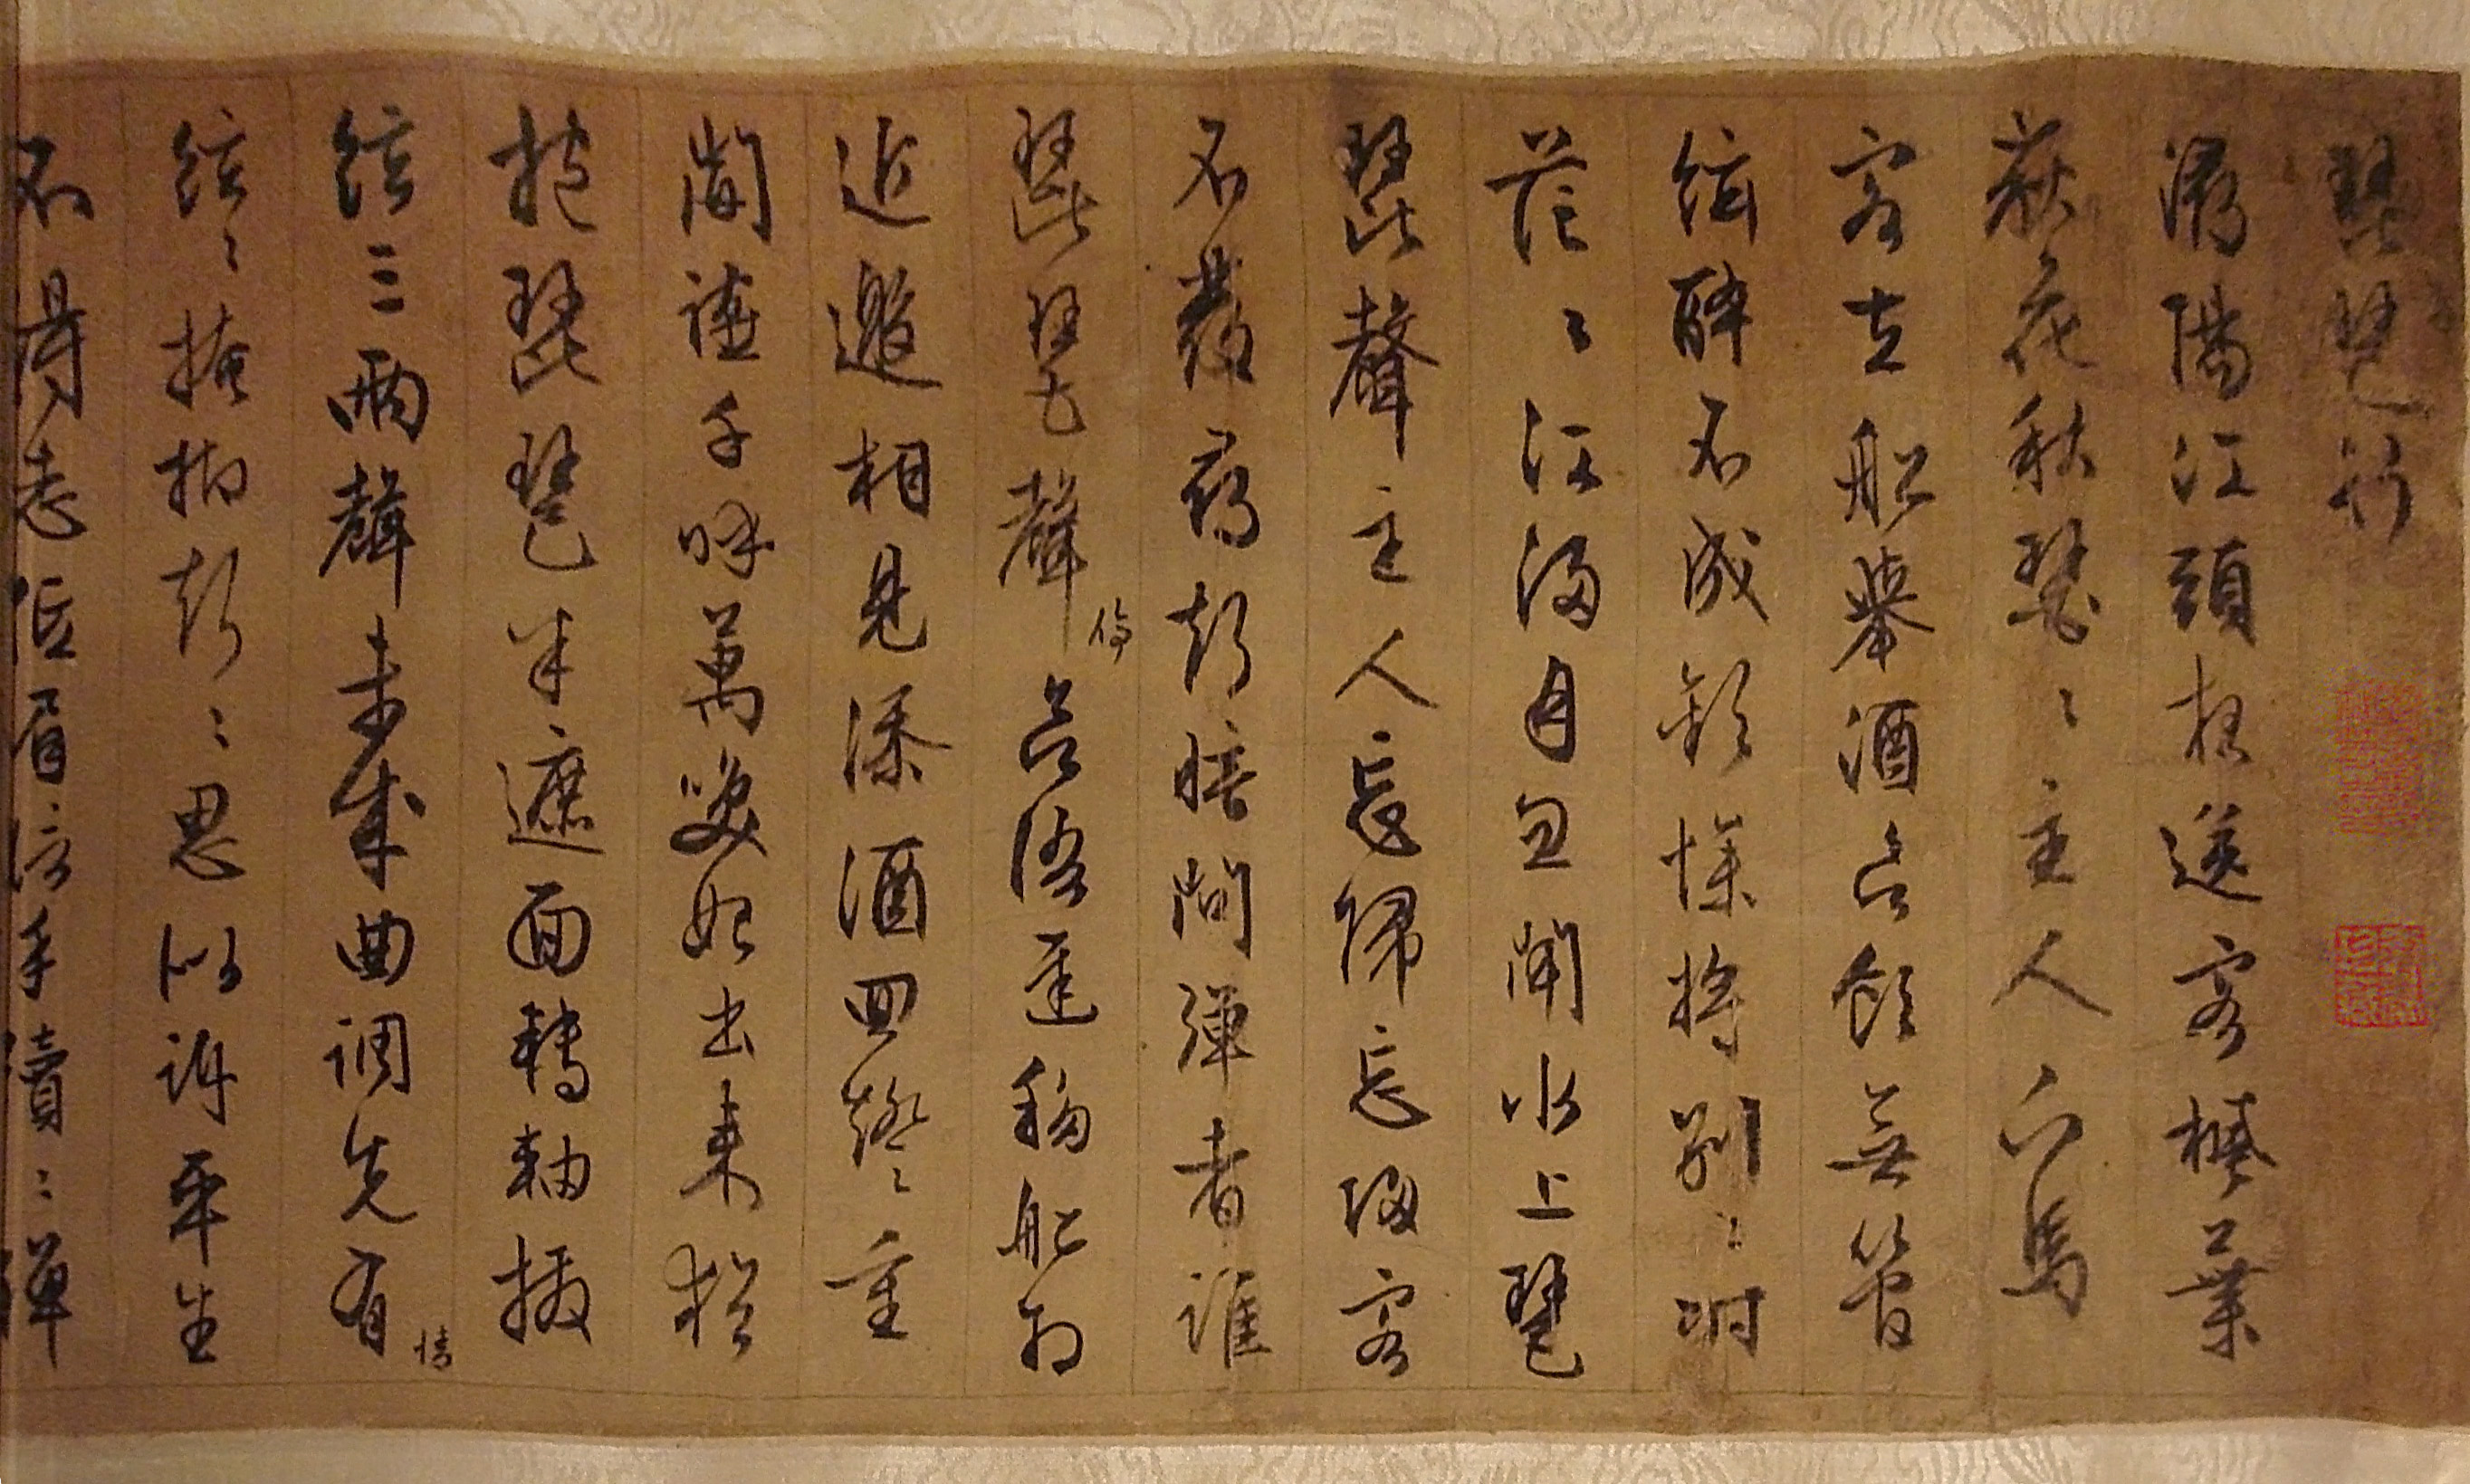 File Cmoc Treasures Of Ancient China Exhibit Pi Pa Xing: ancient china calligraphy